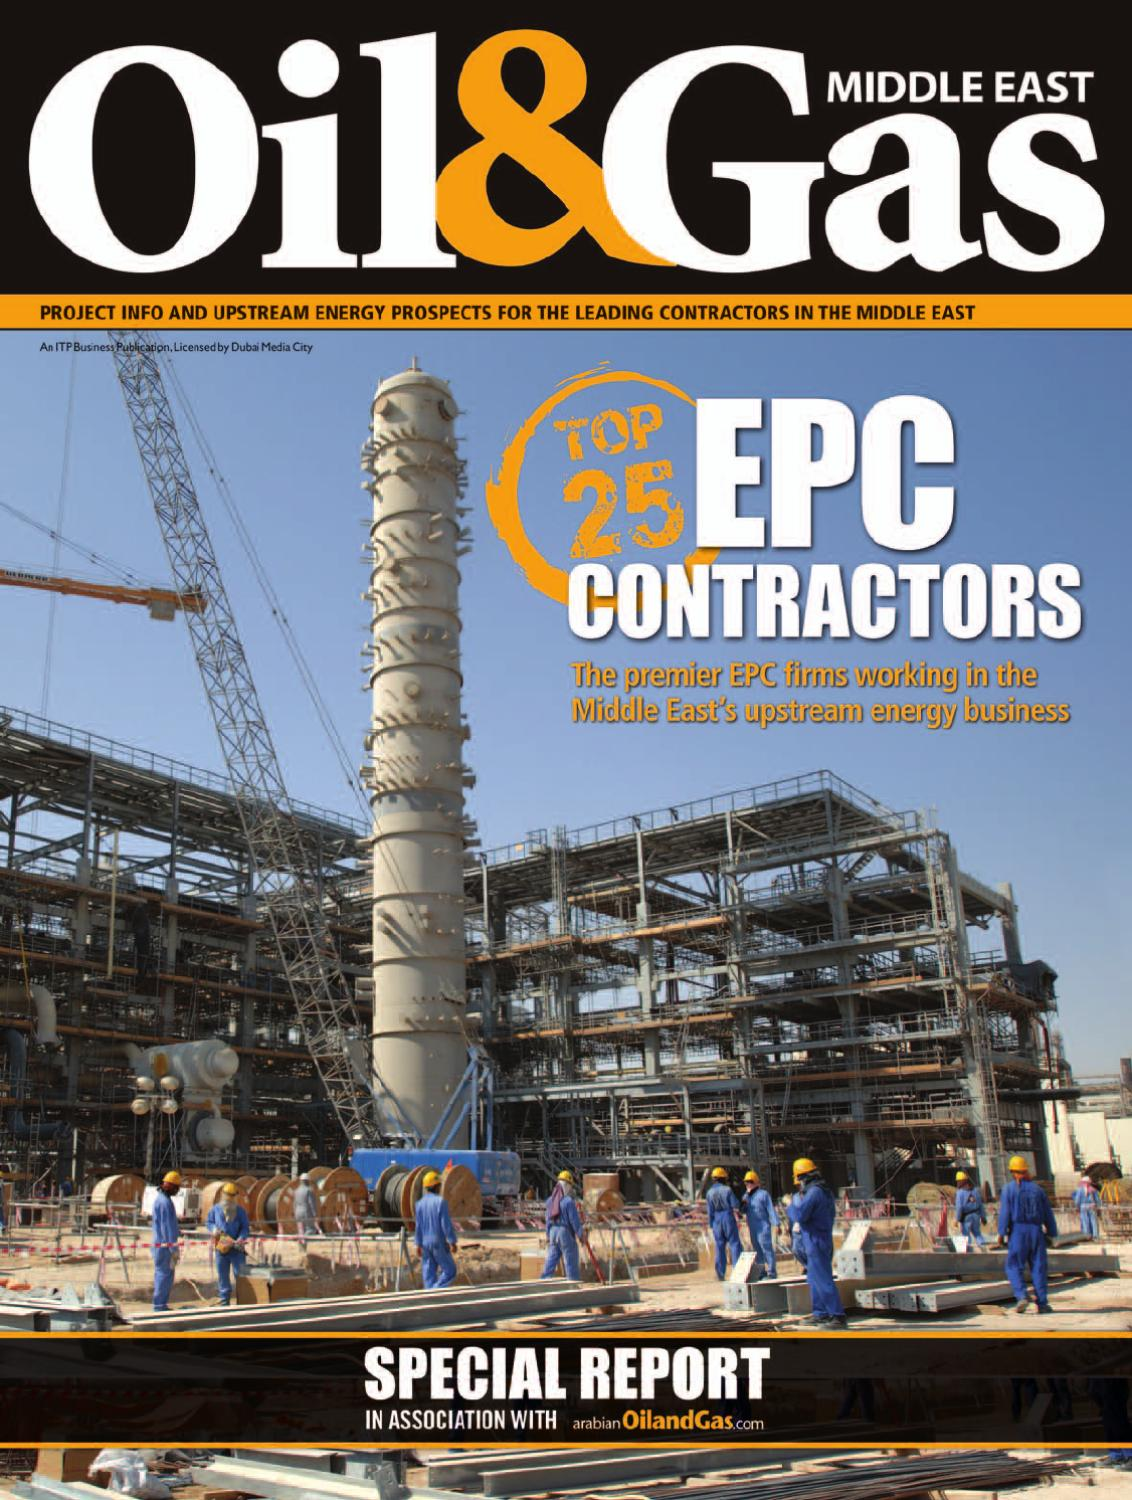 Oil & Gas Middle East - EPC Contractors Special Report